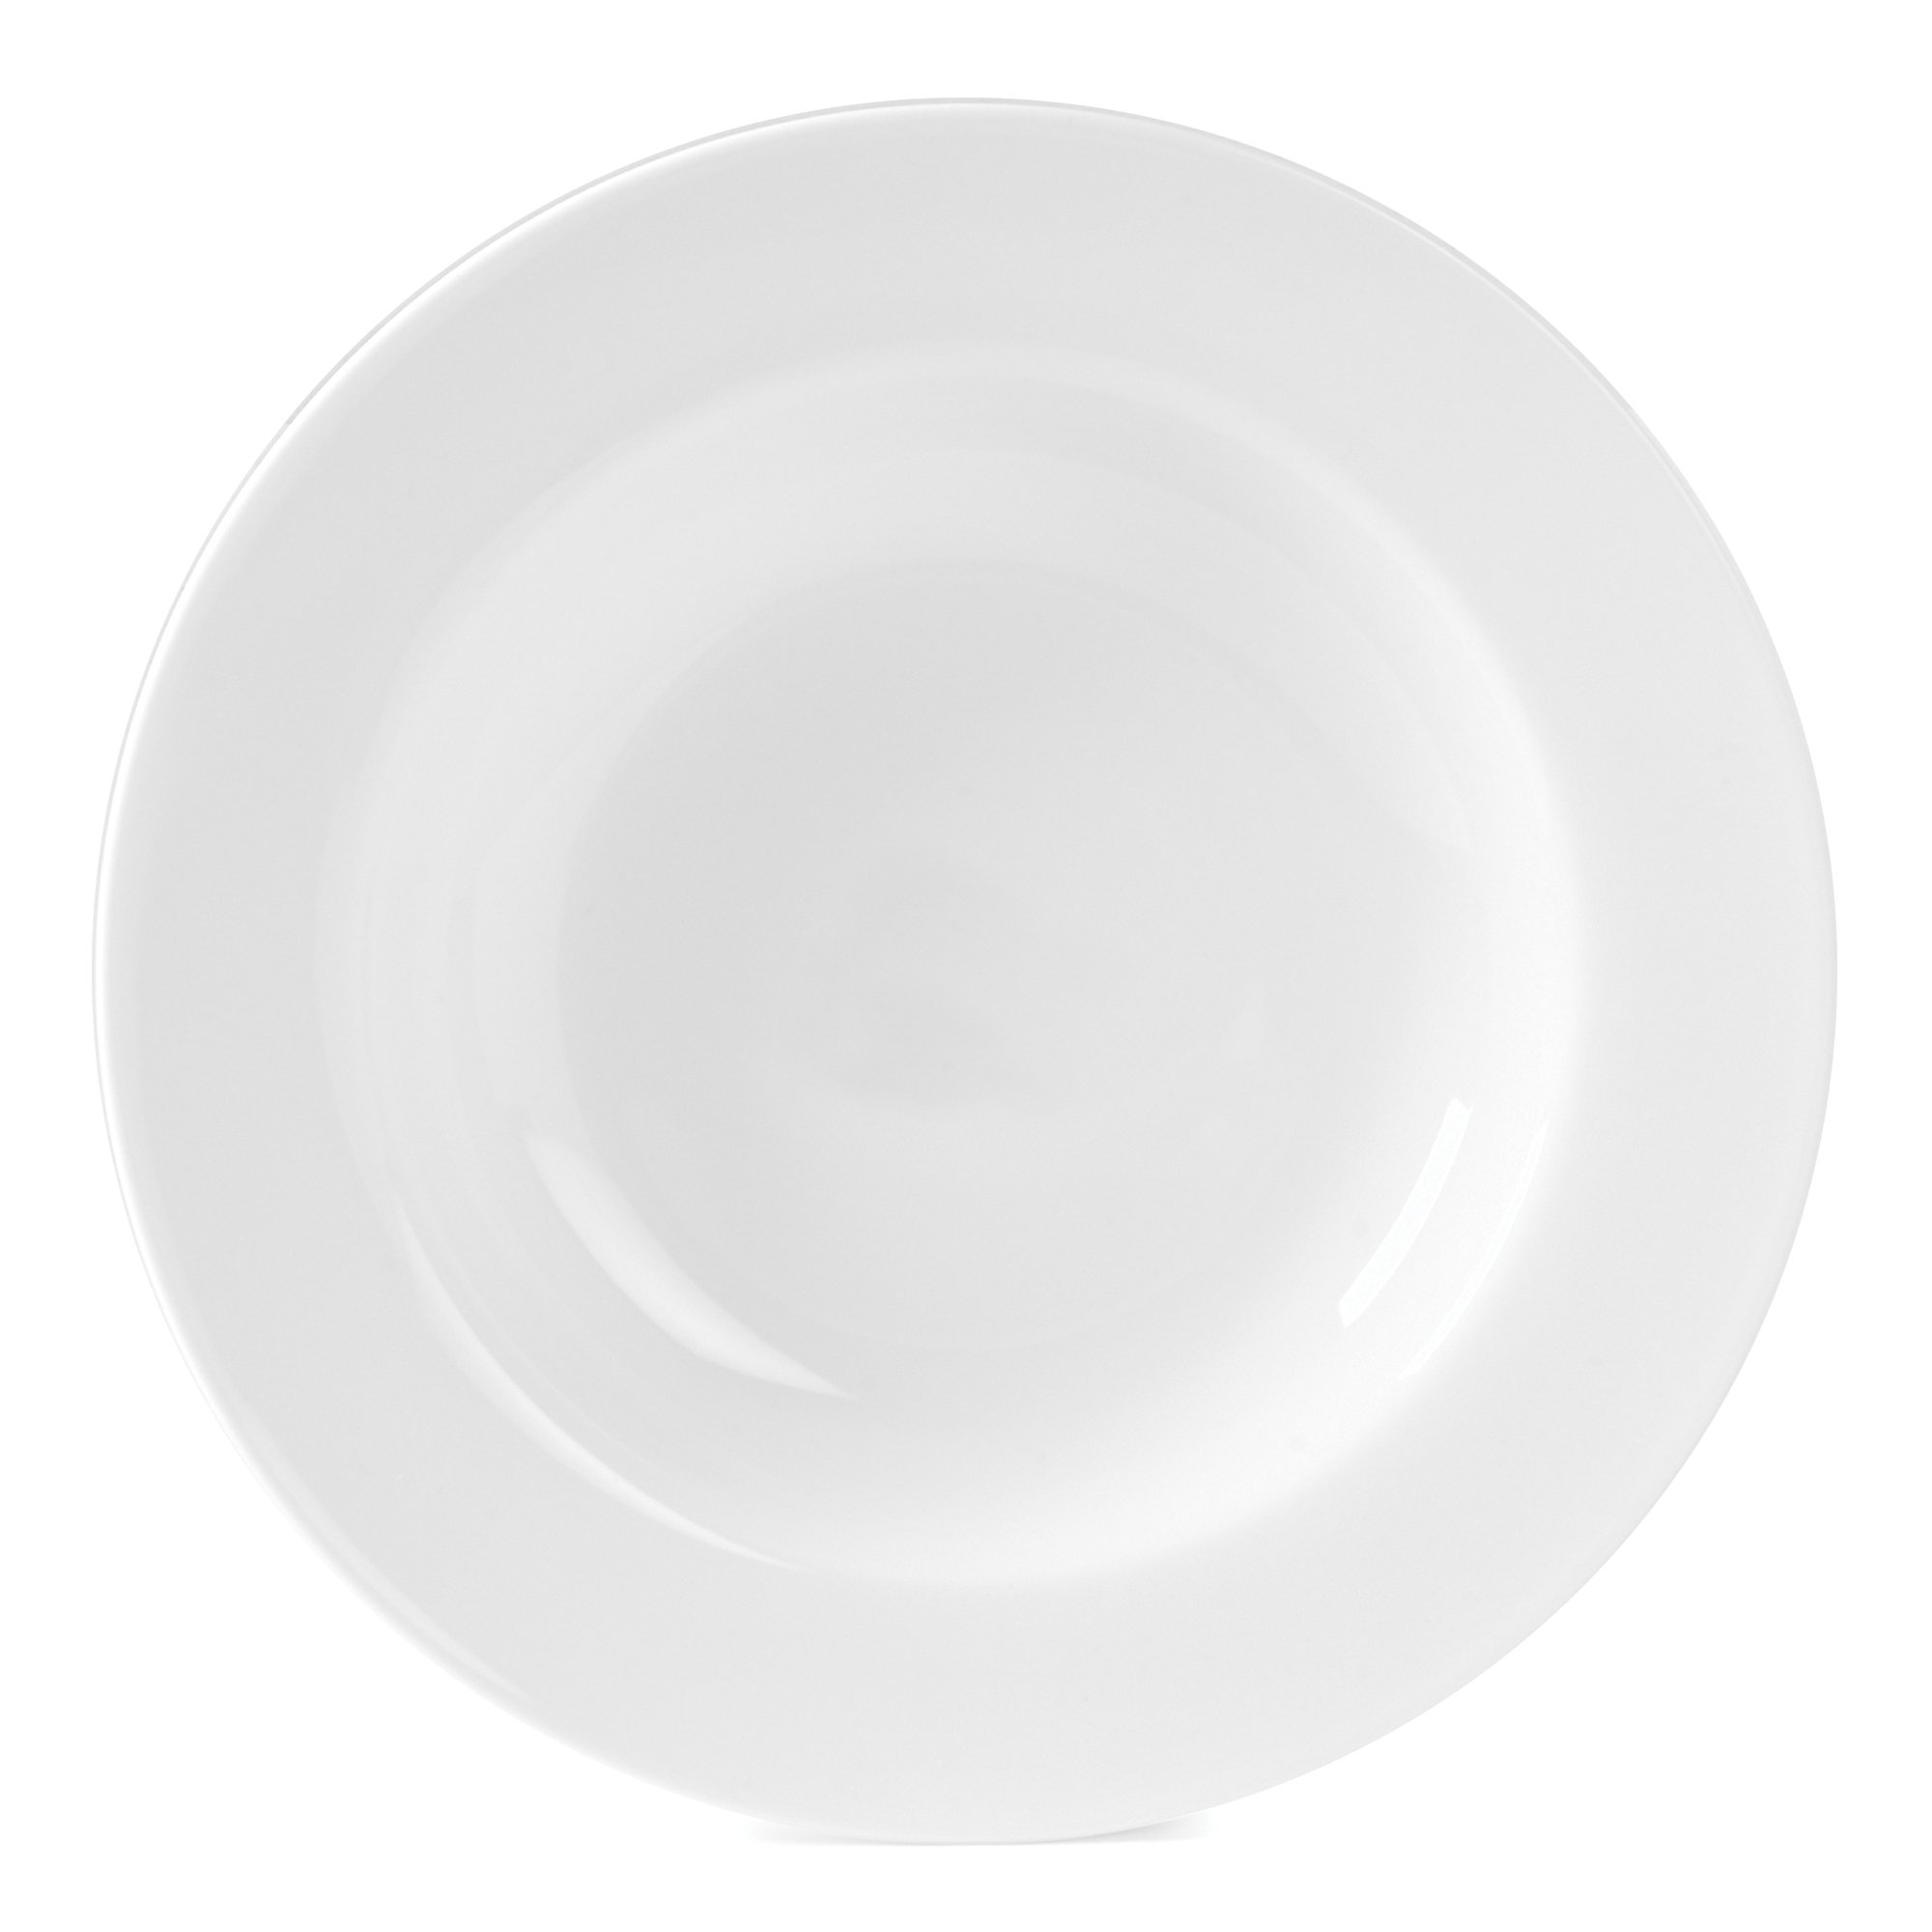 Gourmet Whiteware Collection, Rim Soup Bowl